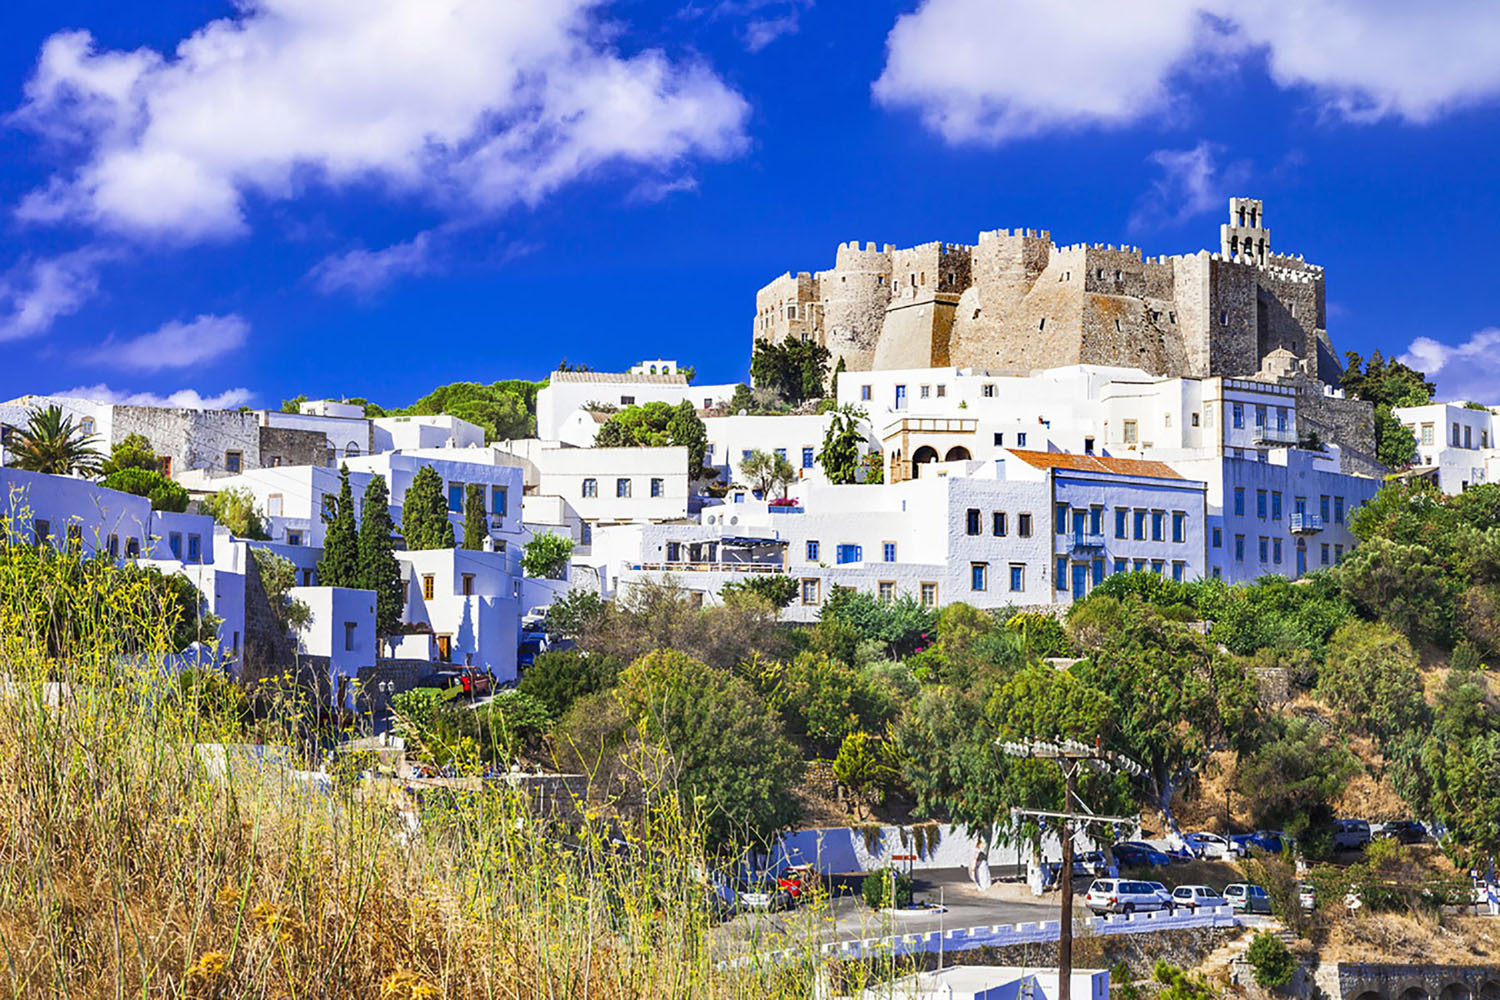 The Monastery of St. John overlooking the town of Patmos, Greece